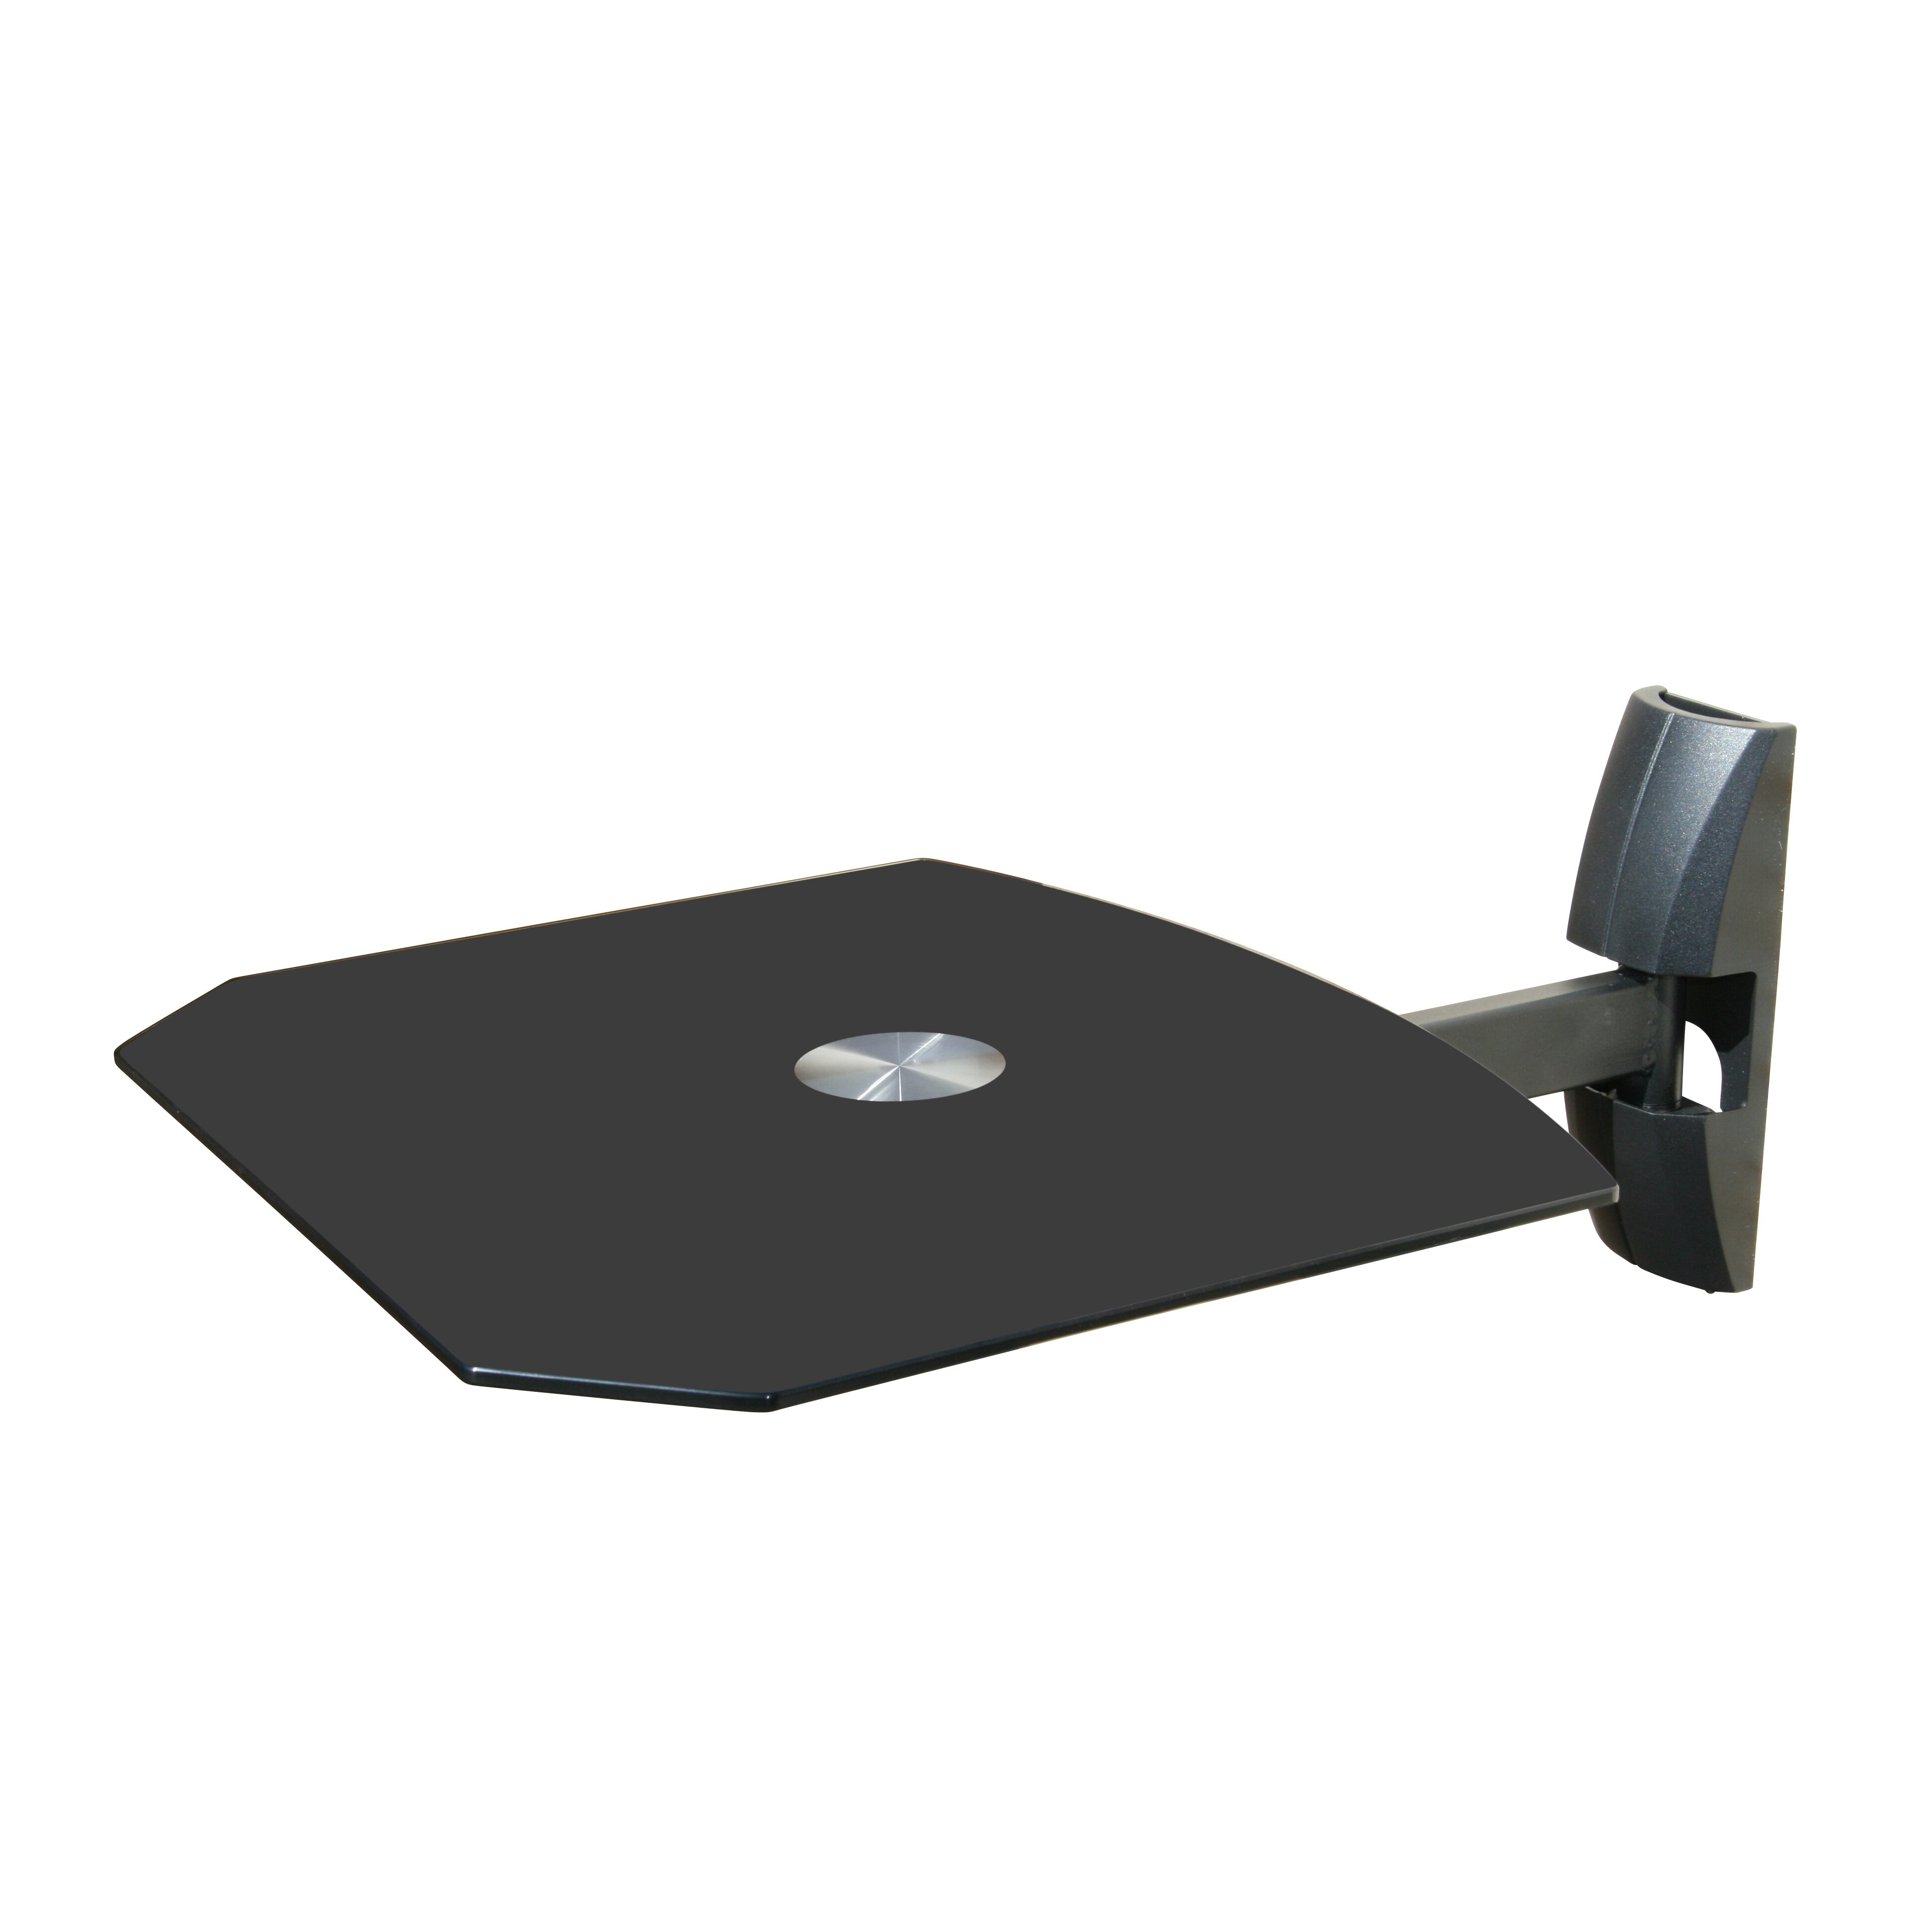 Mount It Single Wall Mount Shelf For DVD VCR Cable Box PS3 XBOX Stereo Blu